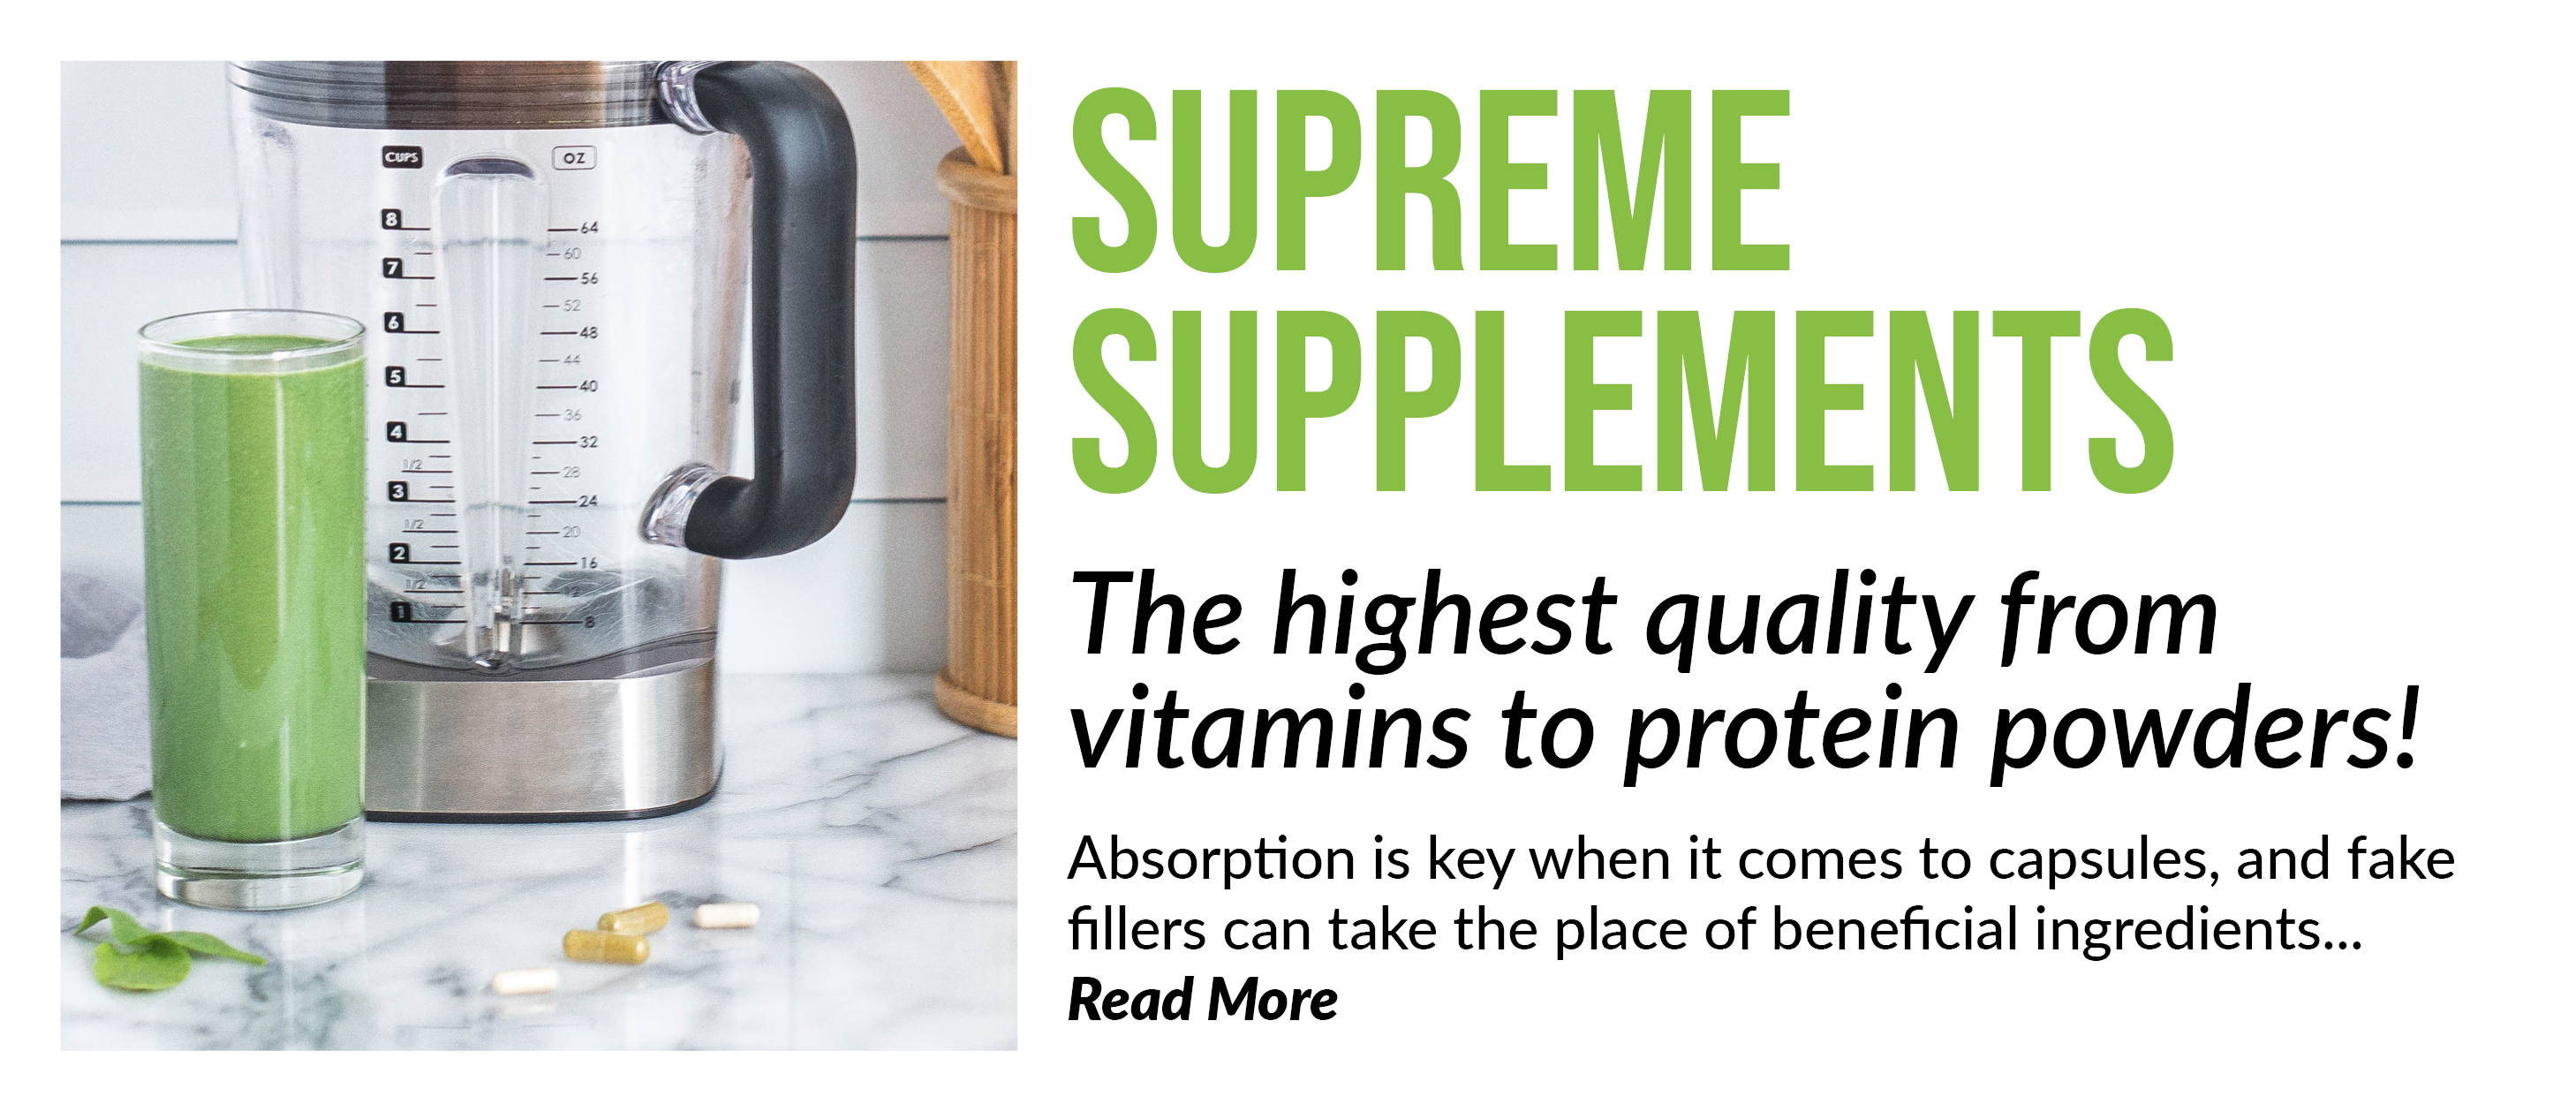 Safe supplements